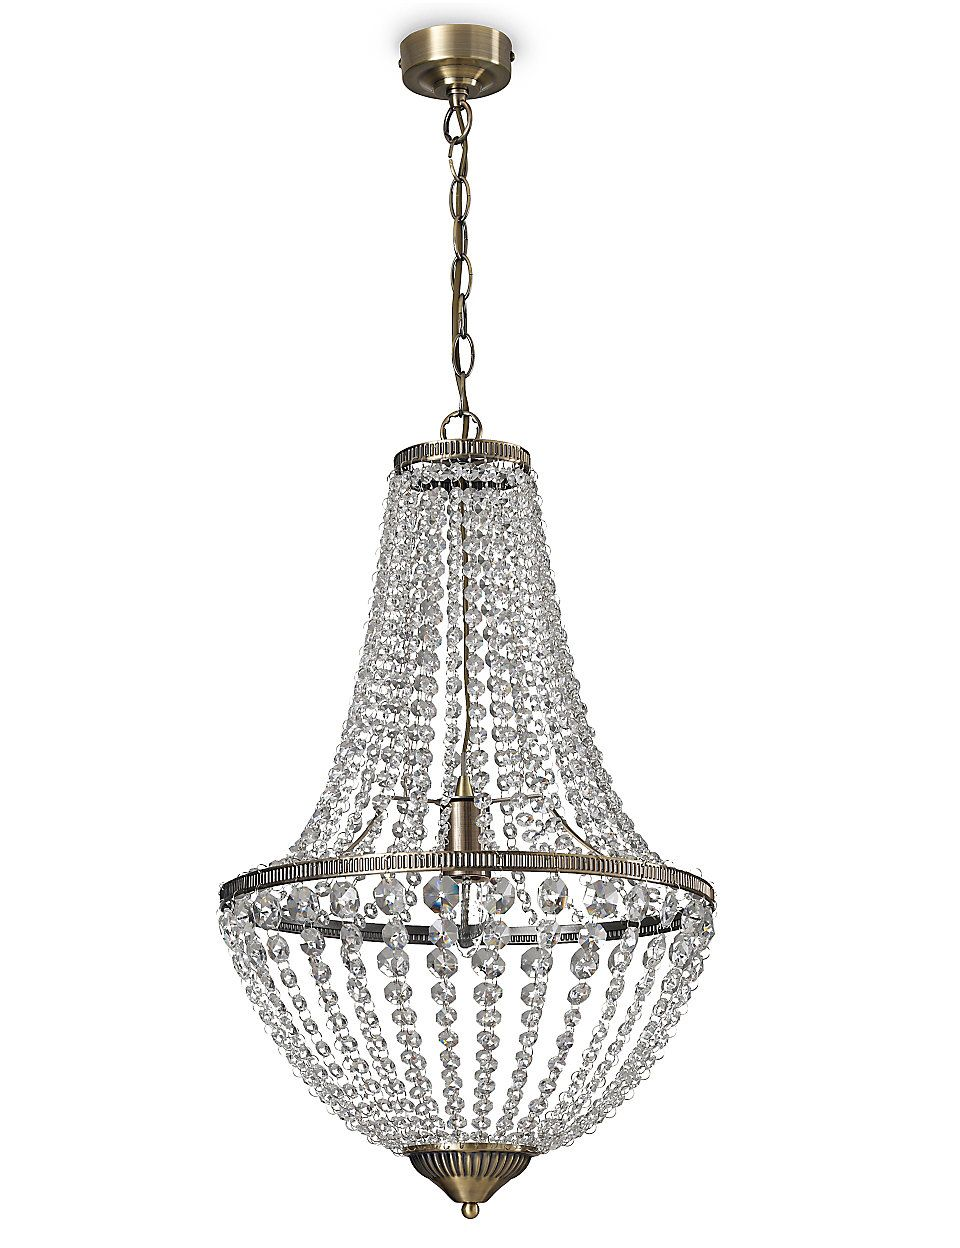 Beaded Abbey Chandelier   M&S   Lounge   Pinterest   Chandeliers and ...